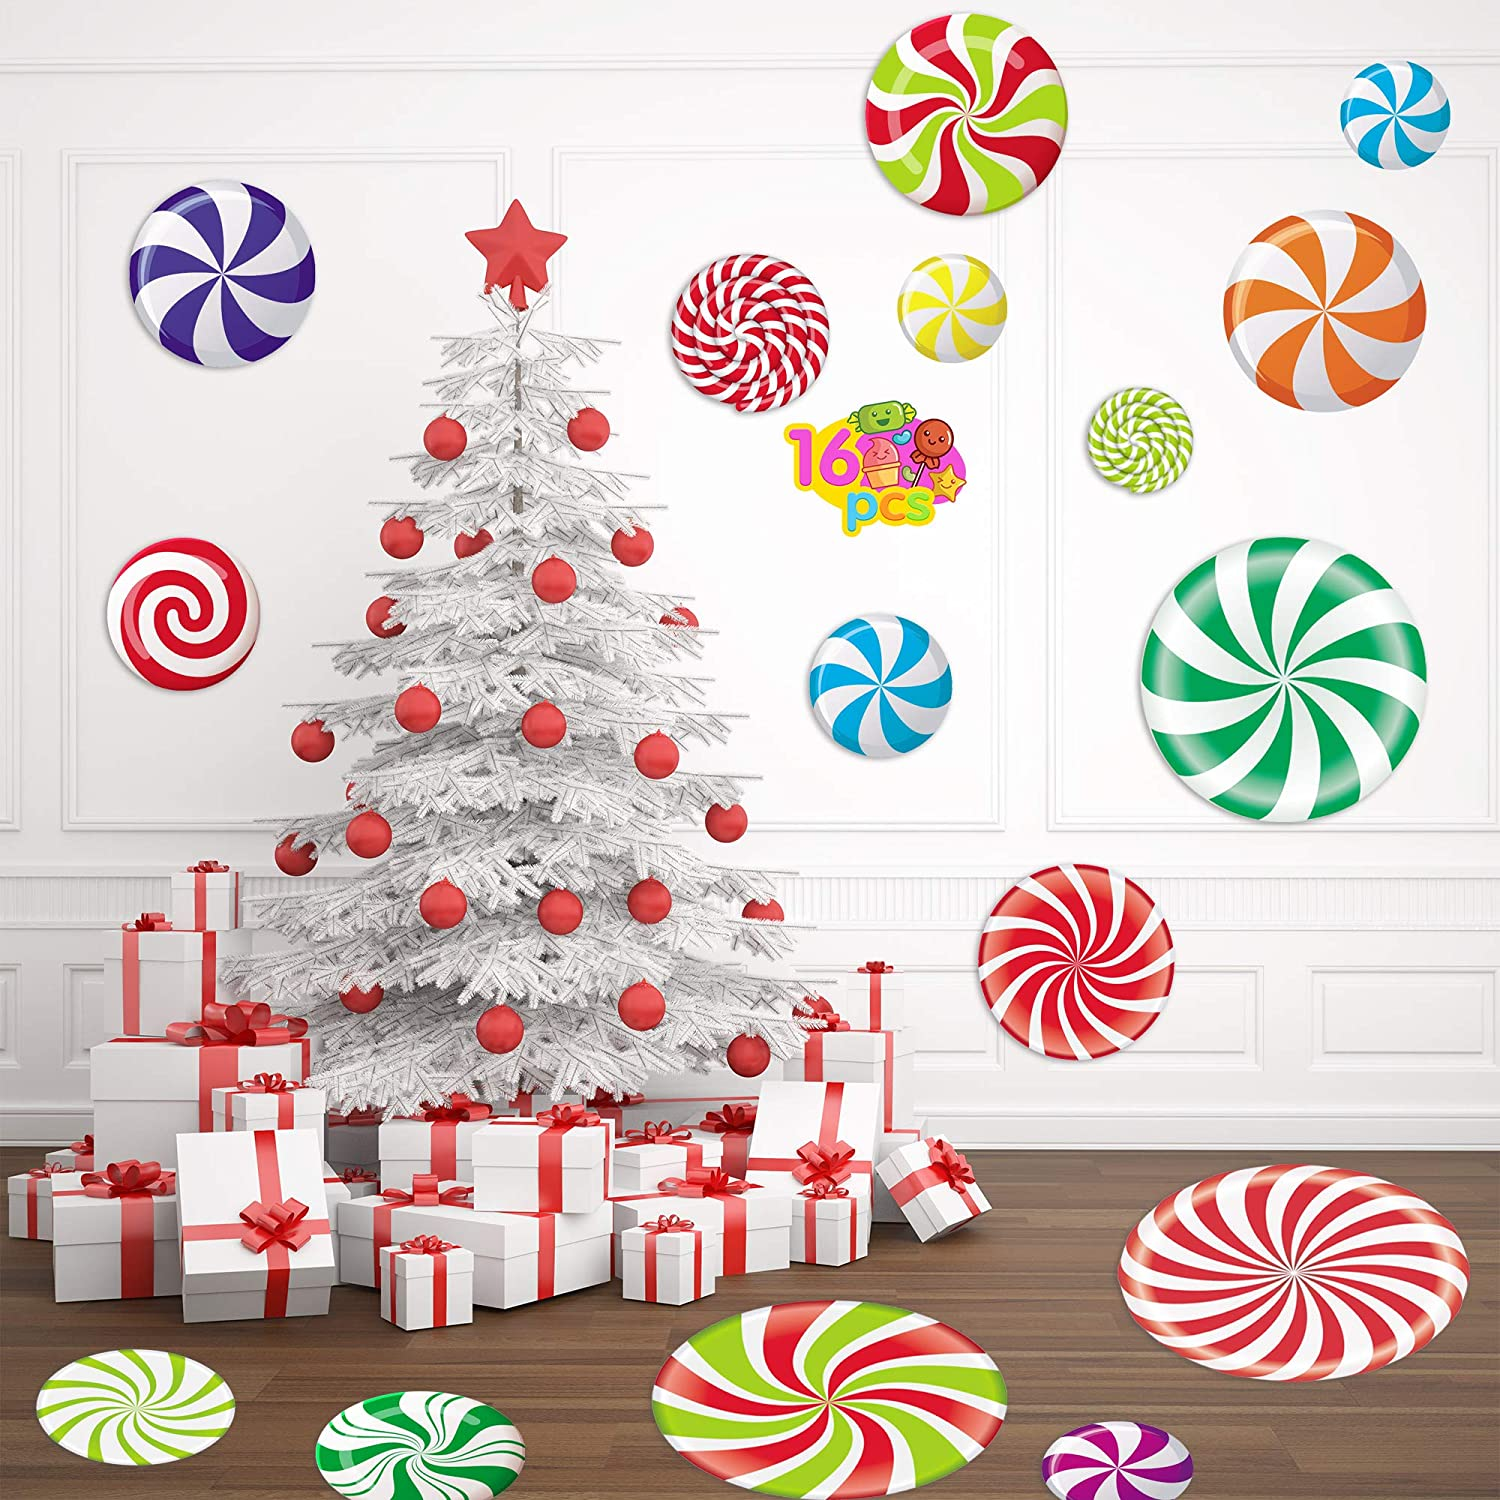 Joy Day 18 Pieces Peppermint Floor Decals Stickers for Christmas Candy Party Decoration Supplies Xmas Candy Land Party Decor Decals for Floors, Windows, Counters and Walls